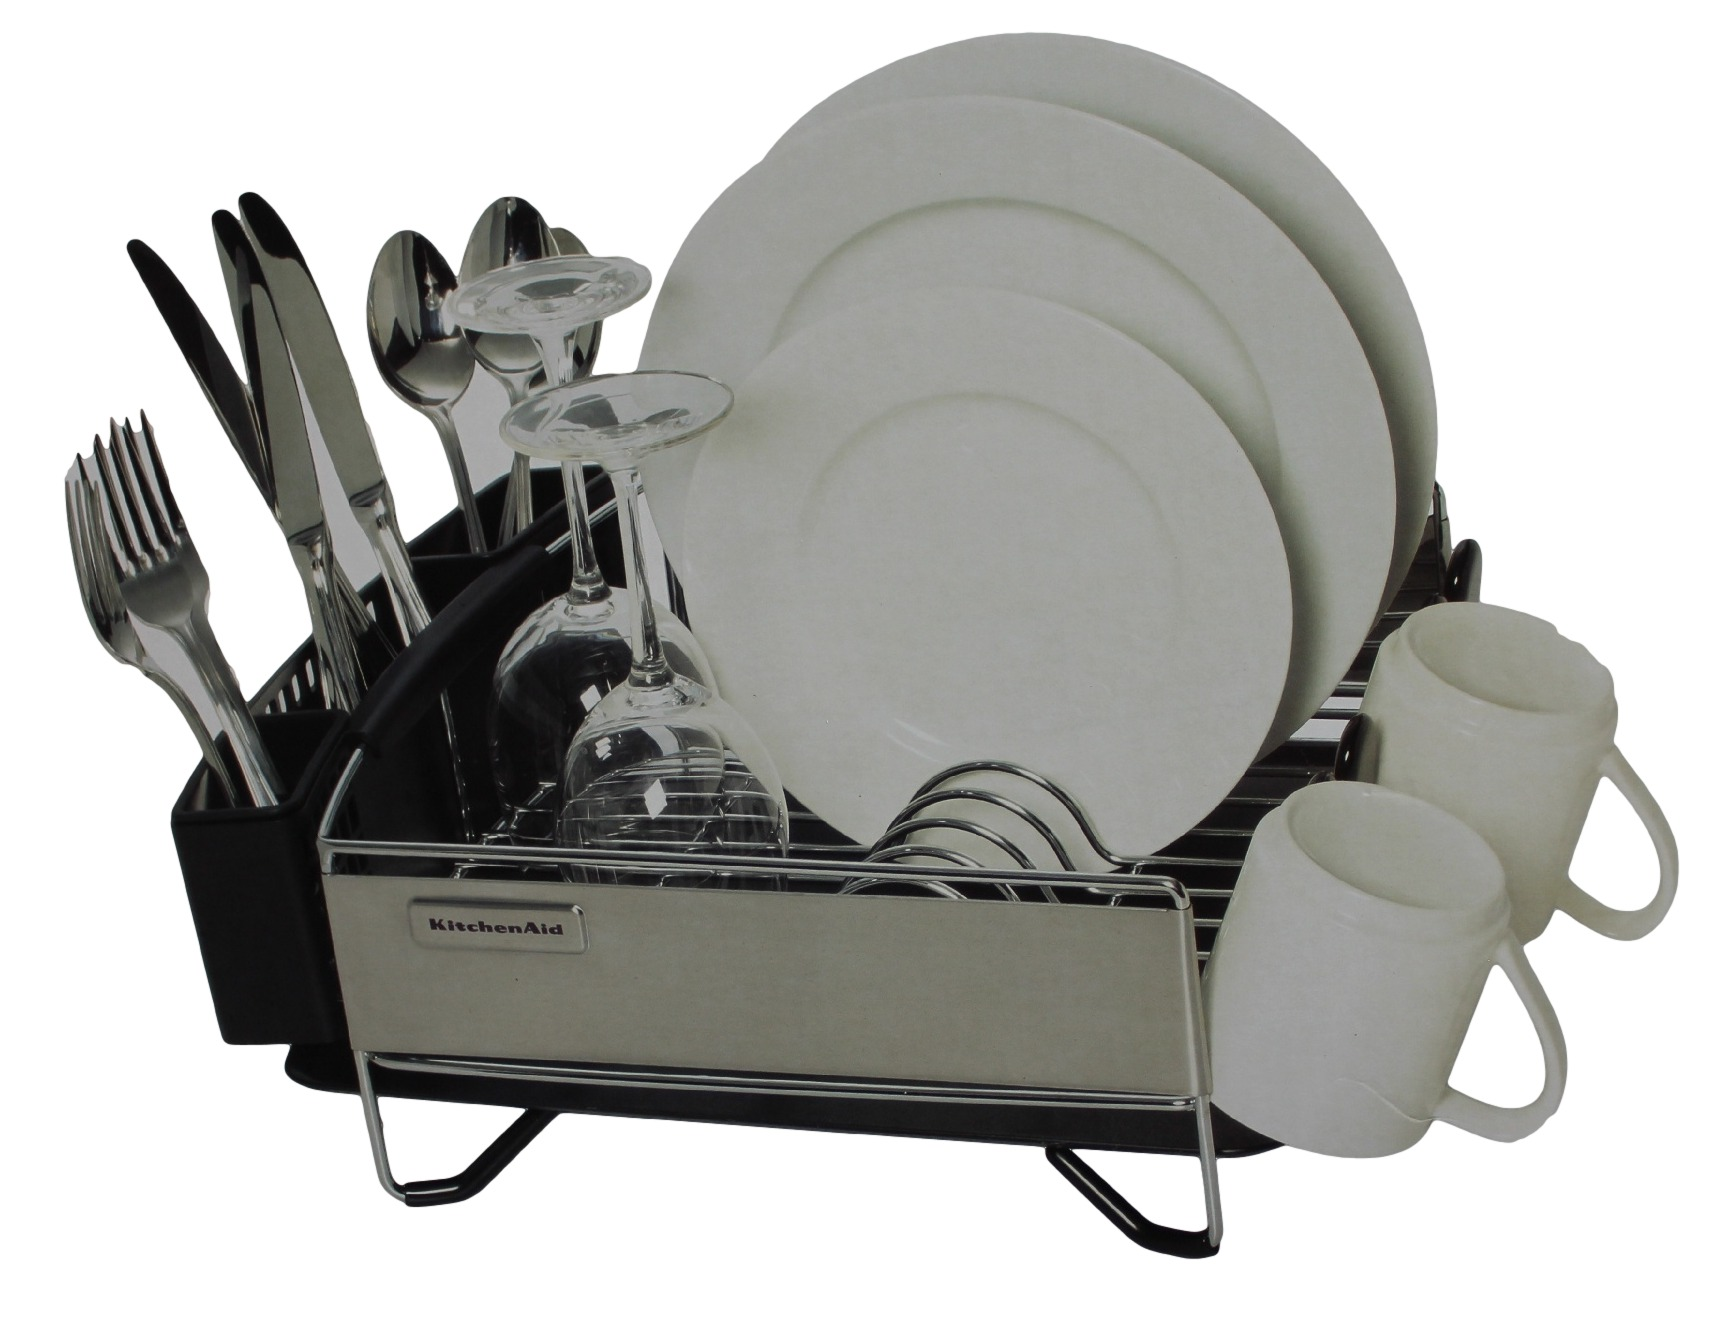 Simple Kitchenaid Dishrack Dish Drainer Photo 4 Kitchenaid Dishrack  Kitchenaid Dishrack